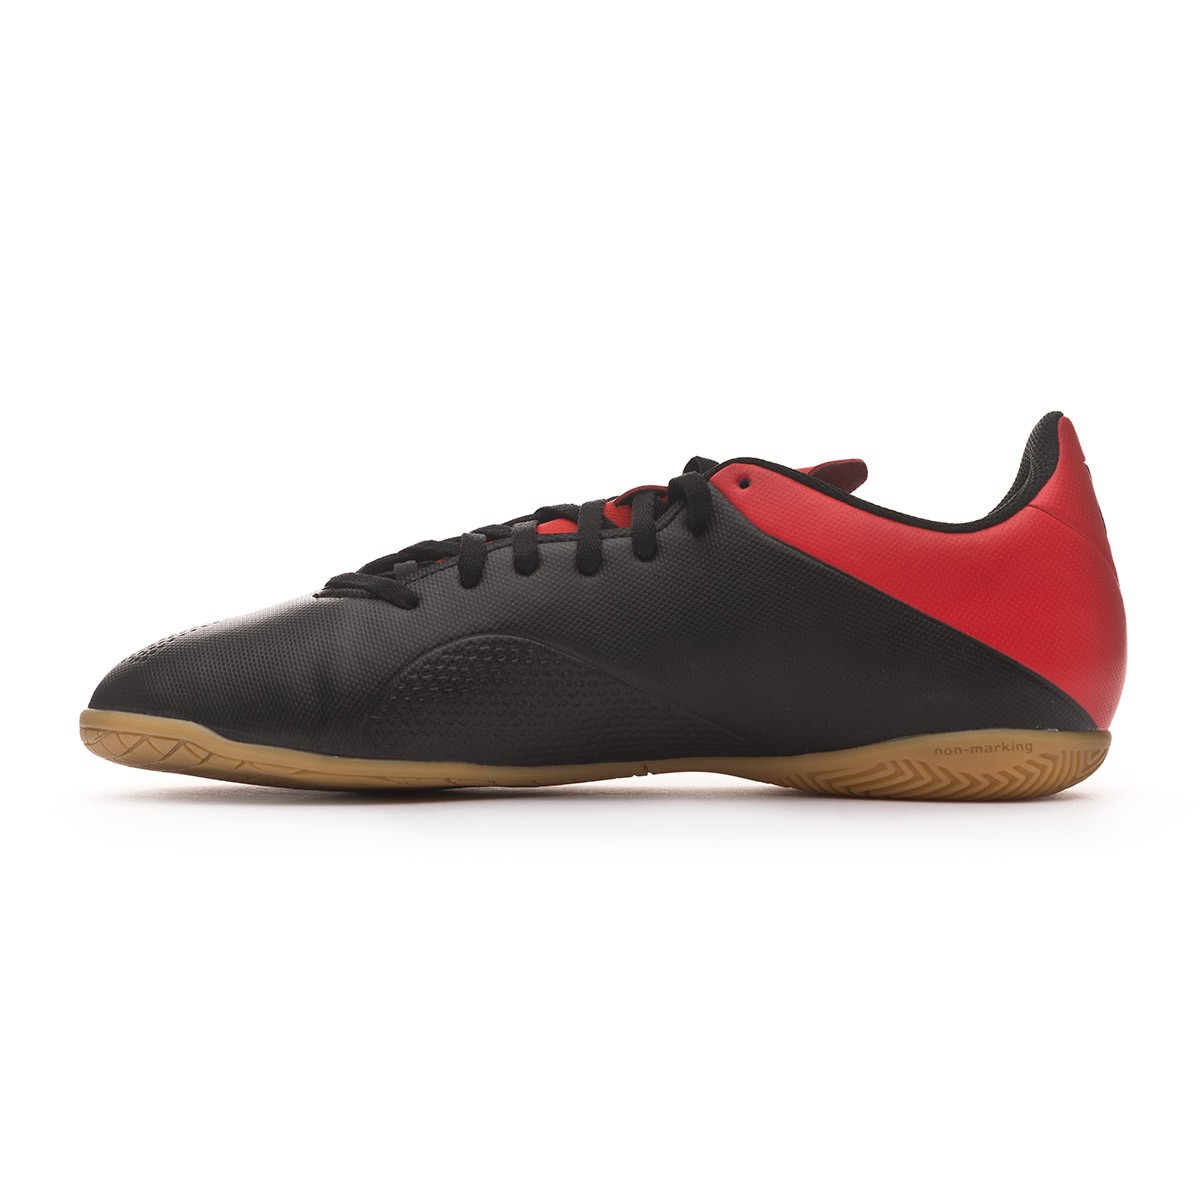 284dc5109 Futsal Boot adidas X Tango 18.4 IN Core black-Off white-Active red -  Football store Fútbol Emotion